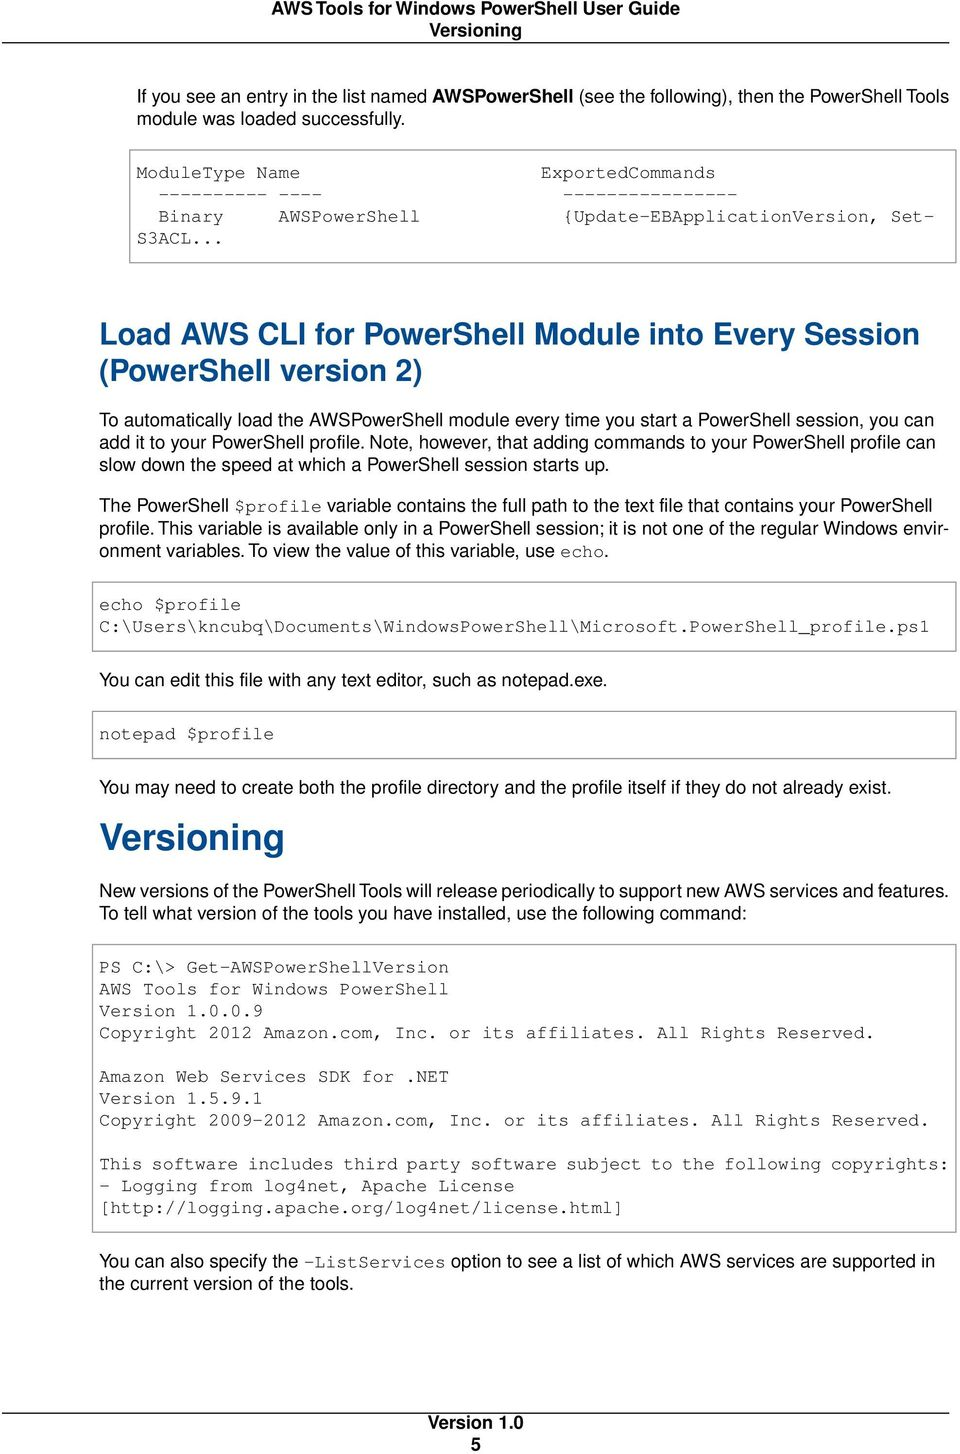 .. Load AWS CLI for PowerShell Module into Every Session (PowerShell version 2) To automatically load the AWSPowerShell module every time you start a PowerShell session, you can add it to your